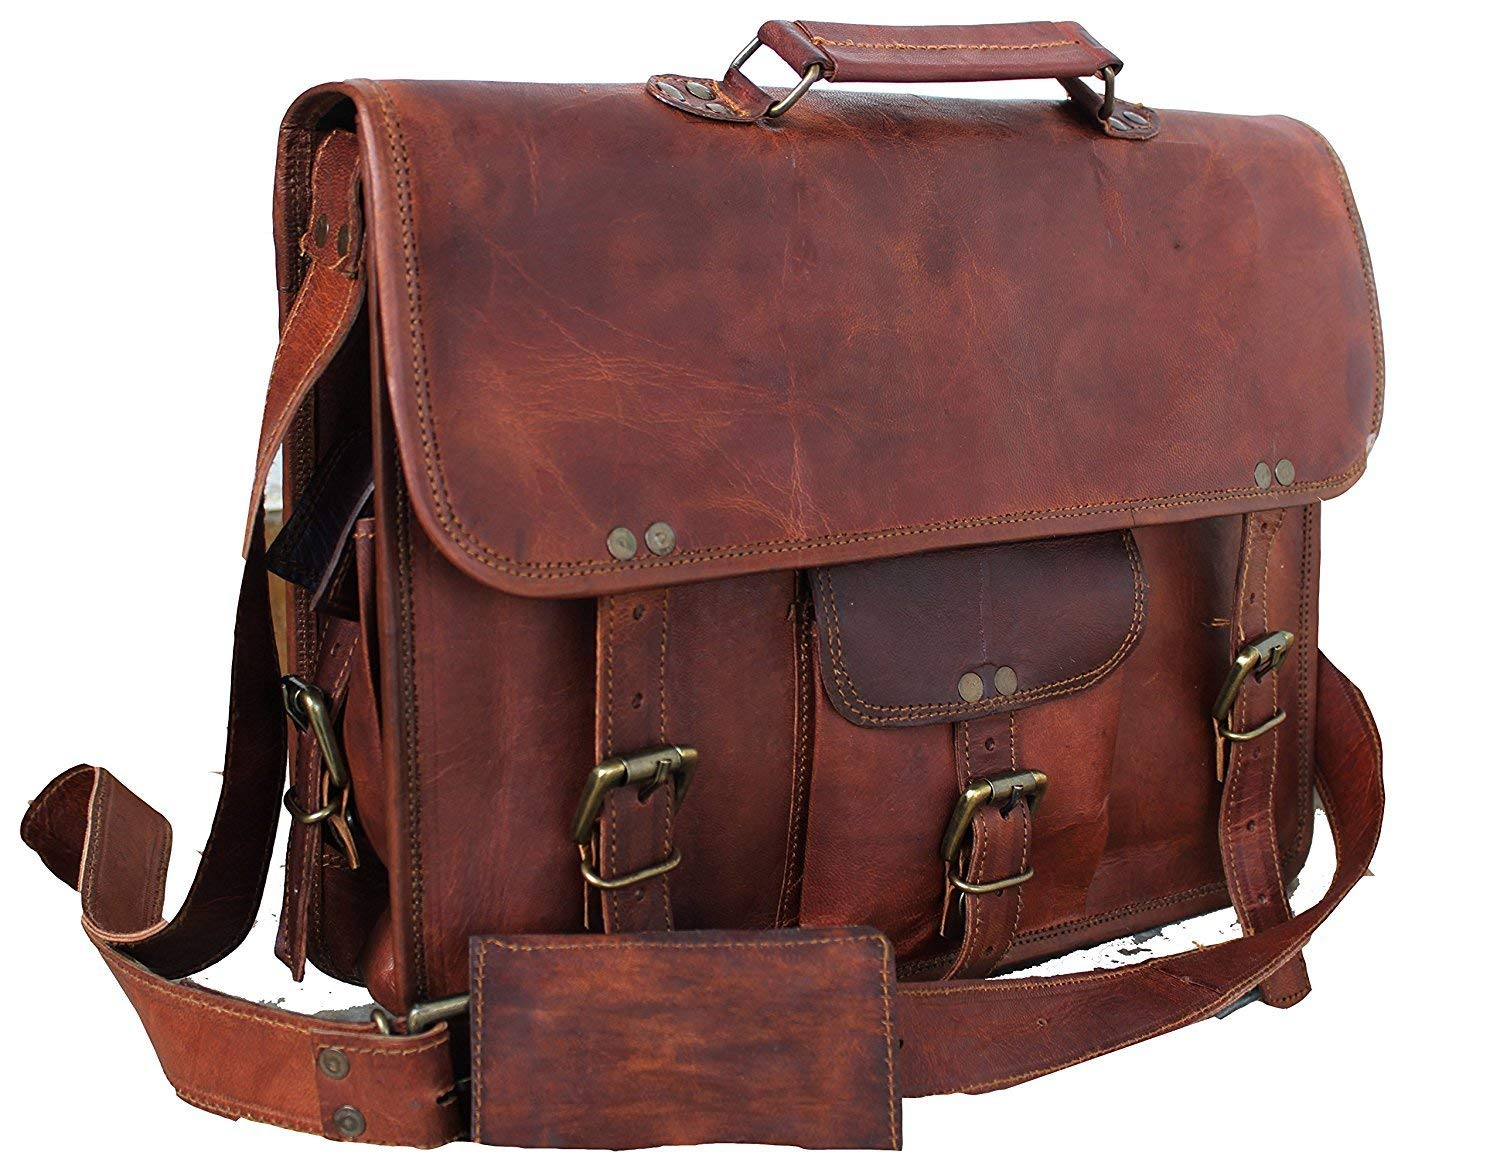 Shariq design Genuine Vintage Brown Leather Messenger Shoulder Laptop Bag for 15-Inch Laptop Leather Messenger Bag for Men and Women